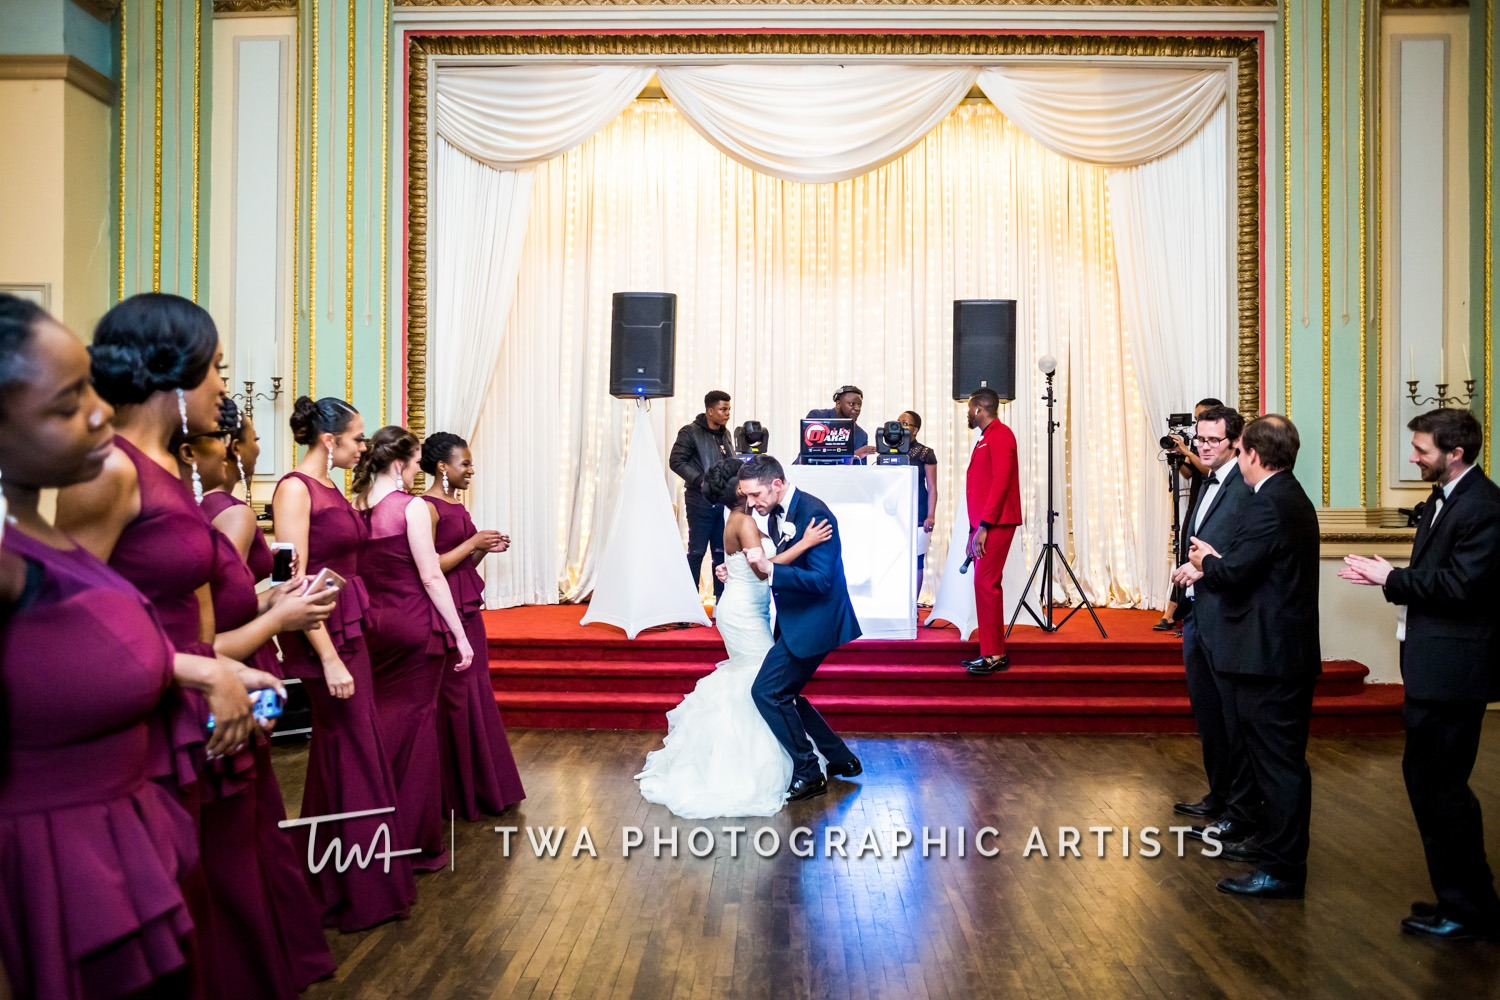 Chicago-Wedding-Photographer-TWA-Photographic-Artists-Stan-Mansion_Ityavyar_Oakley_MJ-0464-1